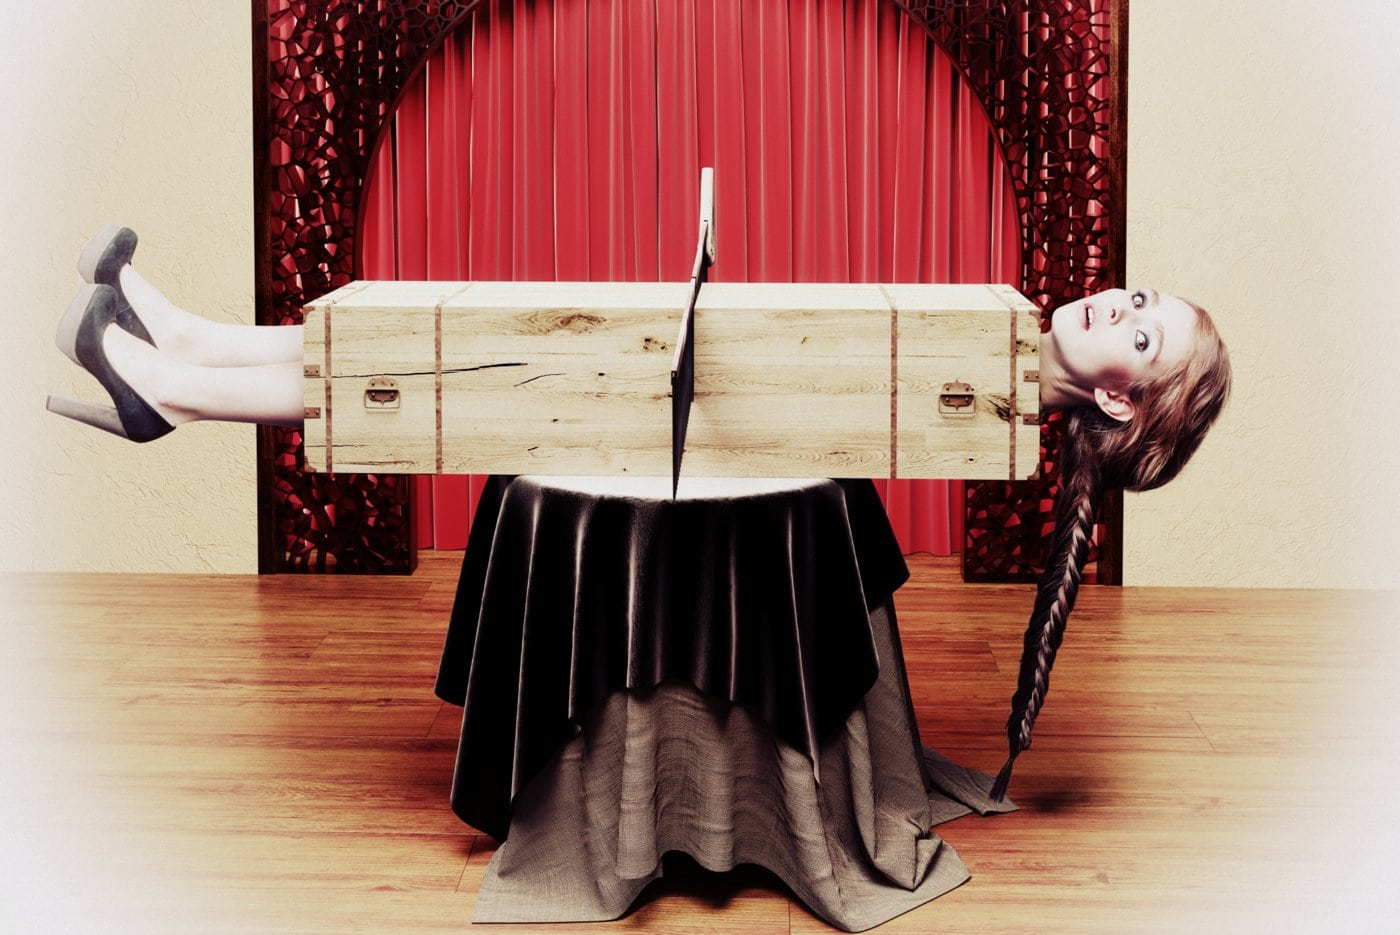 Old sawing the woman in half magic trick